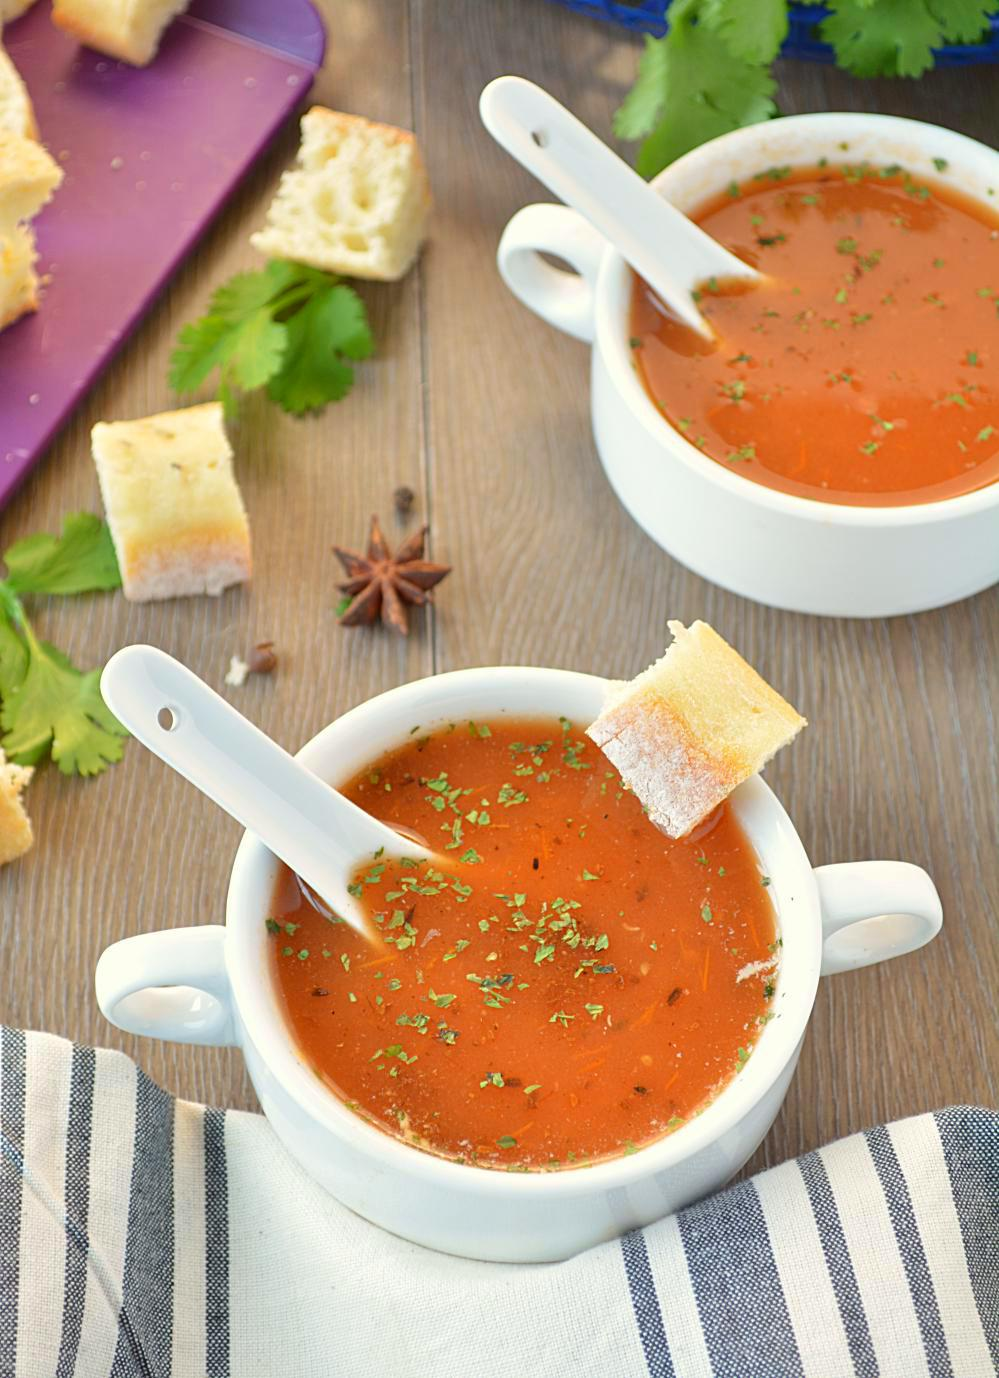 Tamatar ka shorba - Spiced Indian Tomato soup